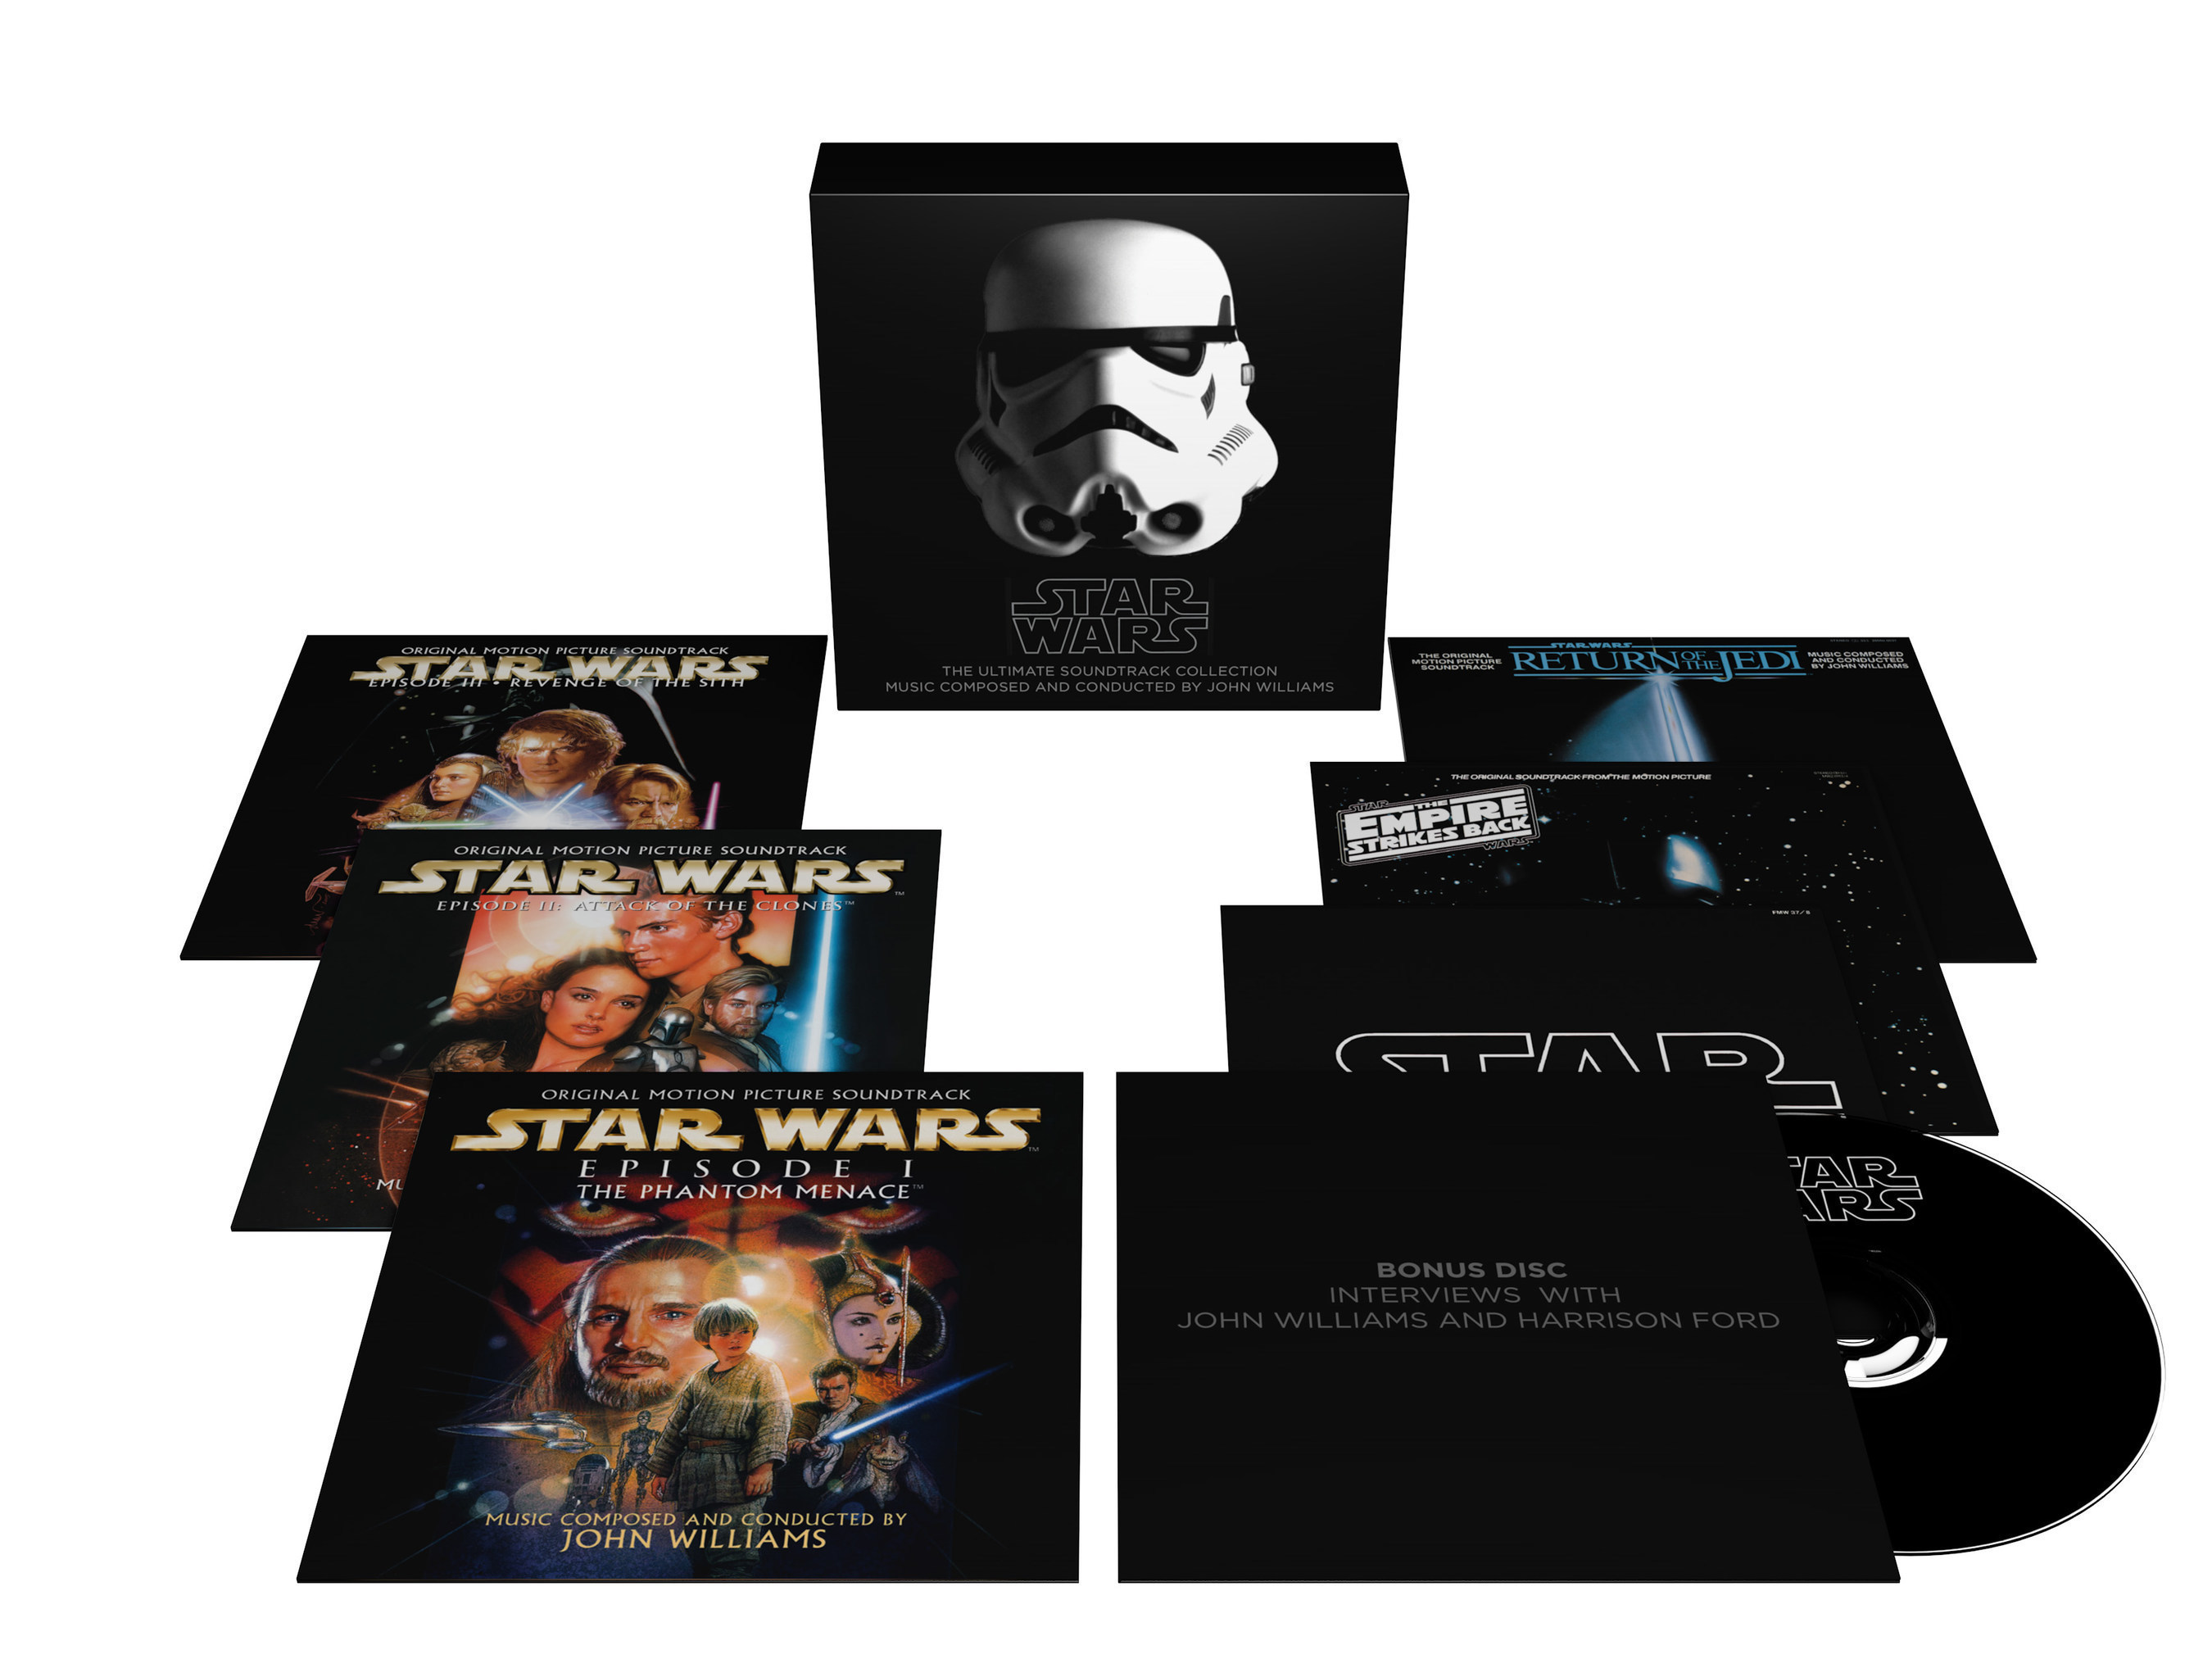 Star Wars: The Ultimate Soundtrack Collection (10 CDs plus DVD) - available now